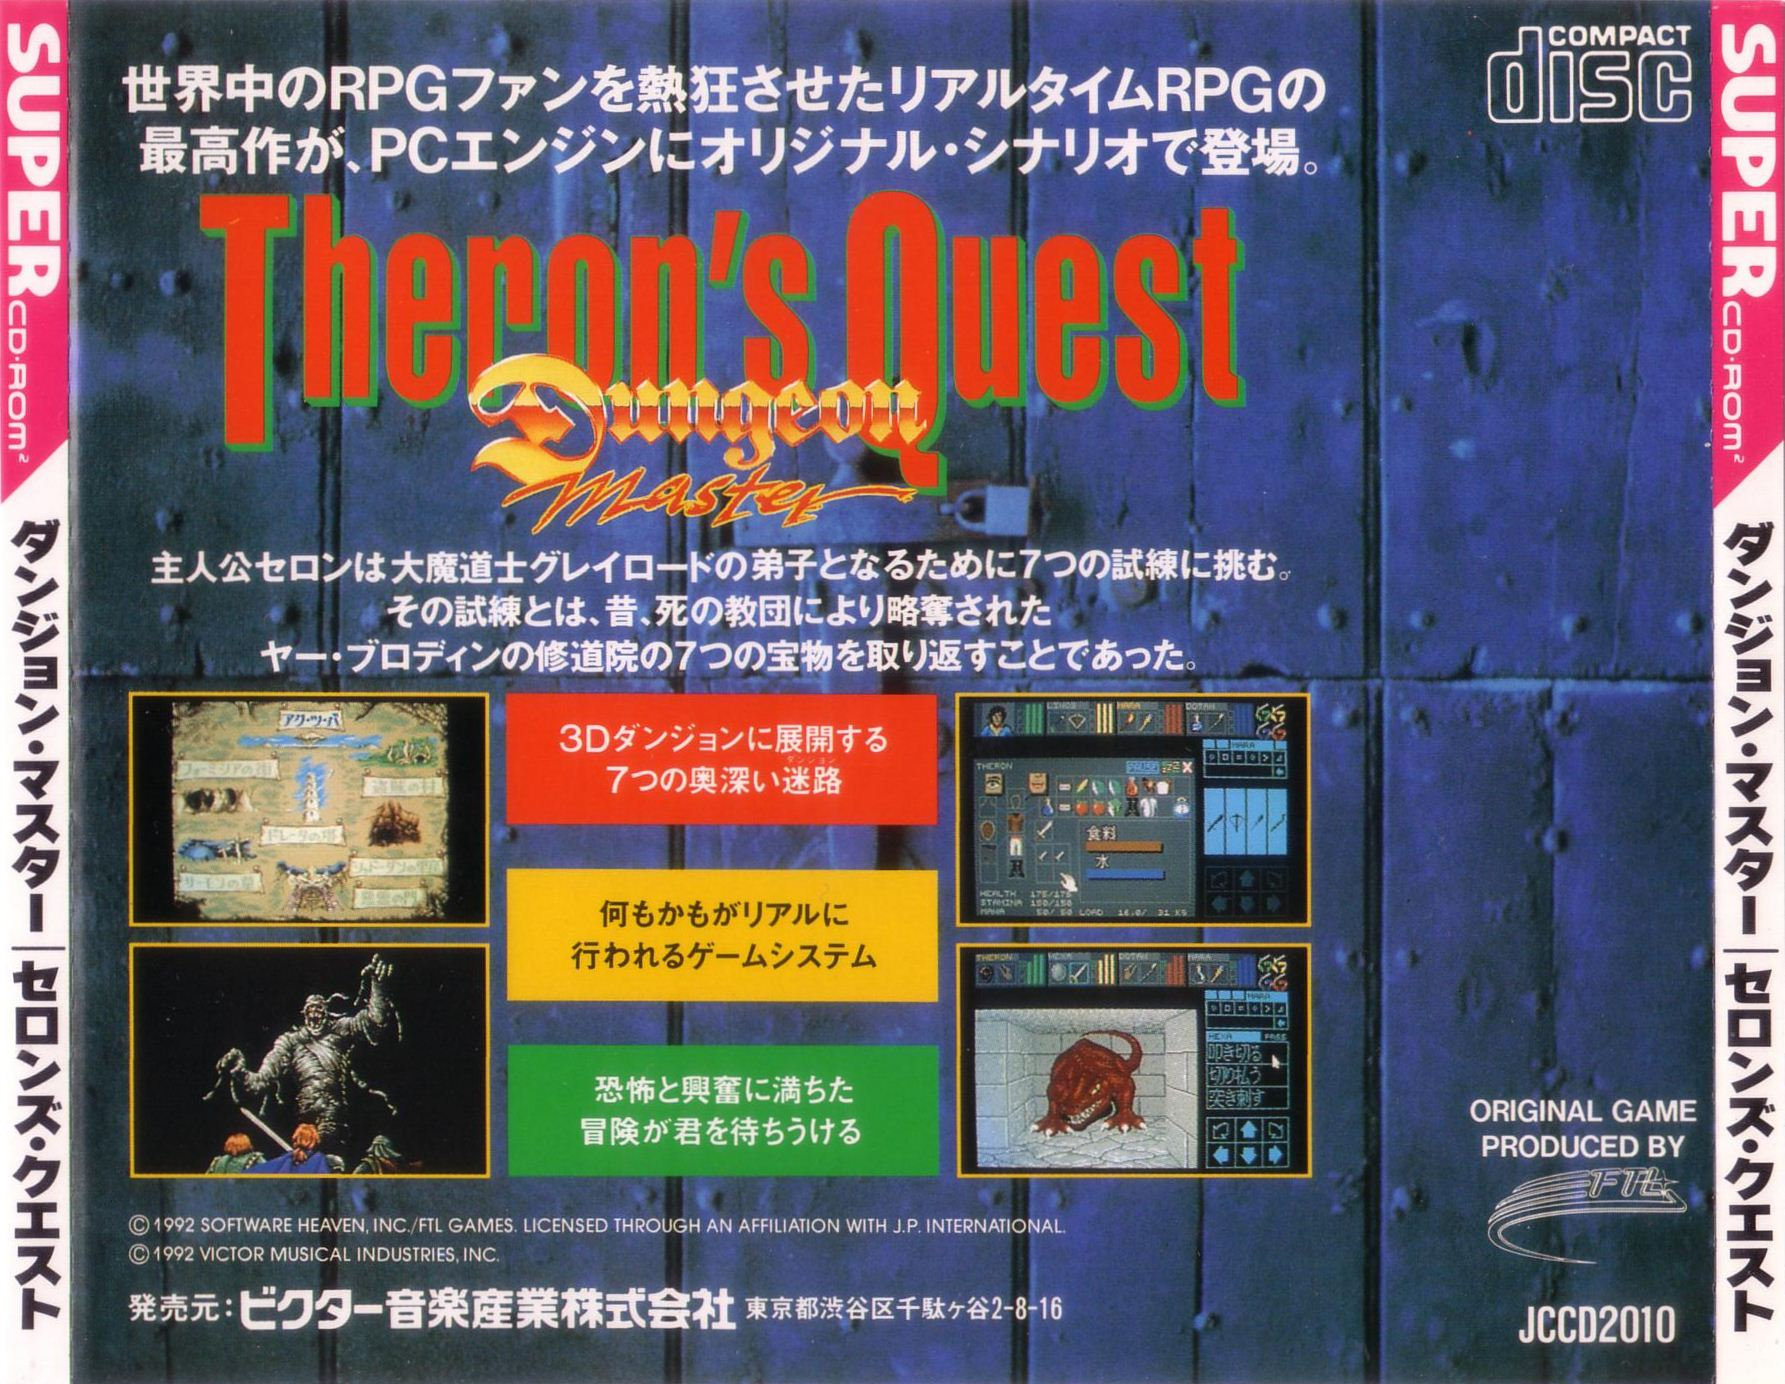 Game - Theron's Quest - JP - PC Engine - Back Card - Front - Scan